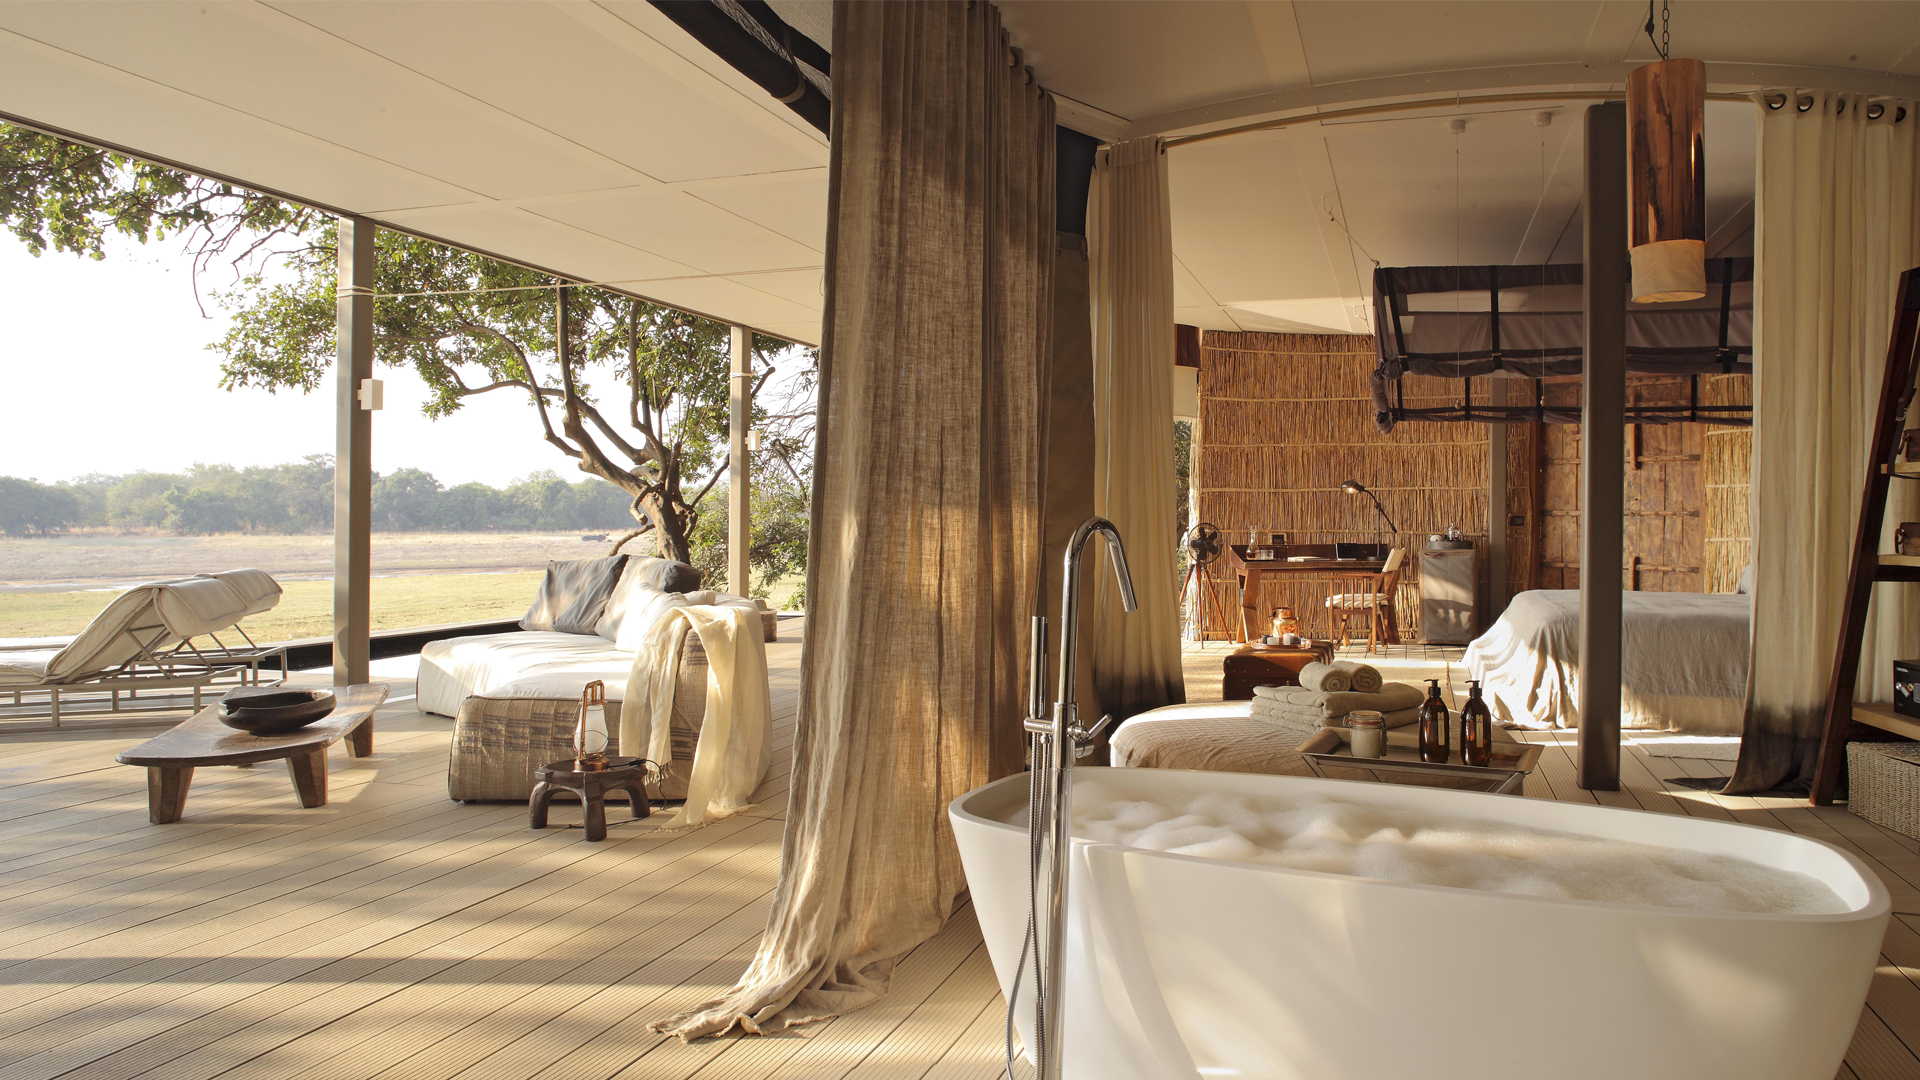 All About Safaris Ultimate Luxury Time + Tide chinzombo room and deck